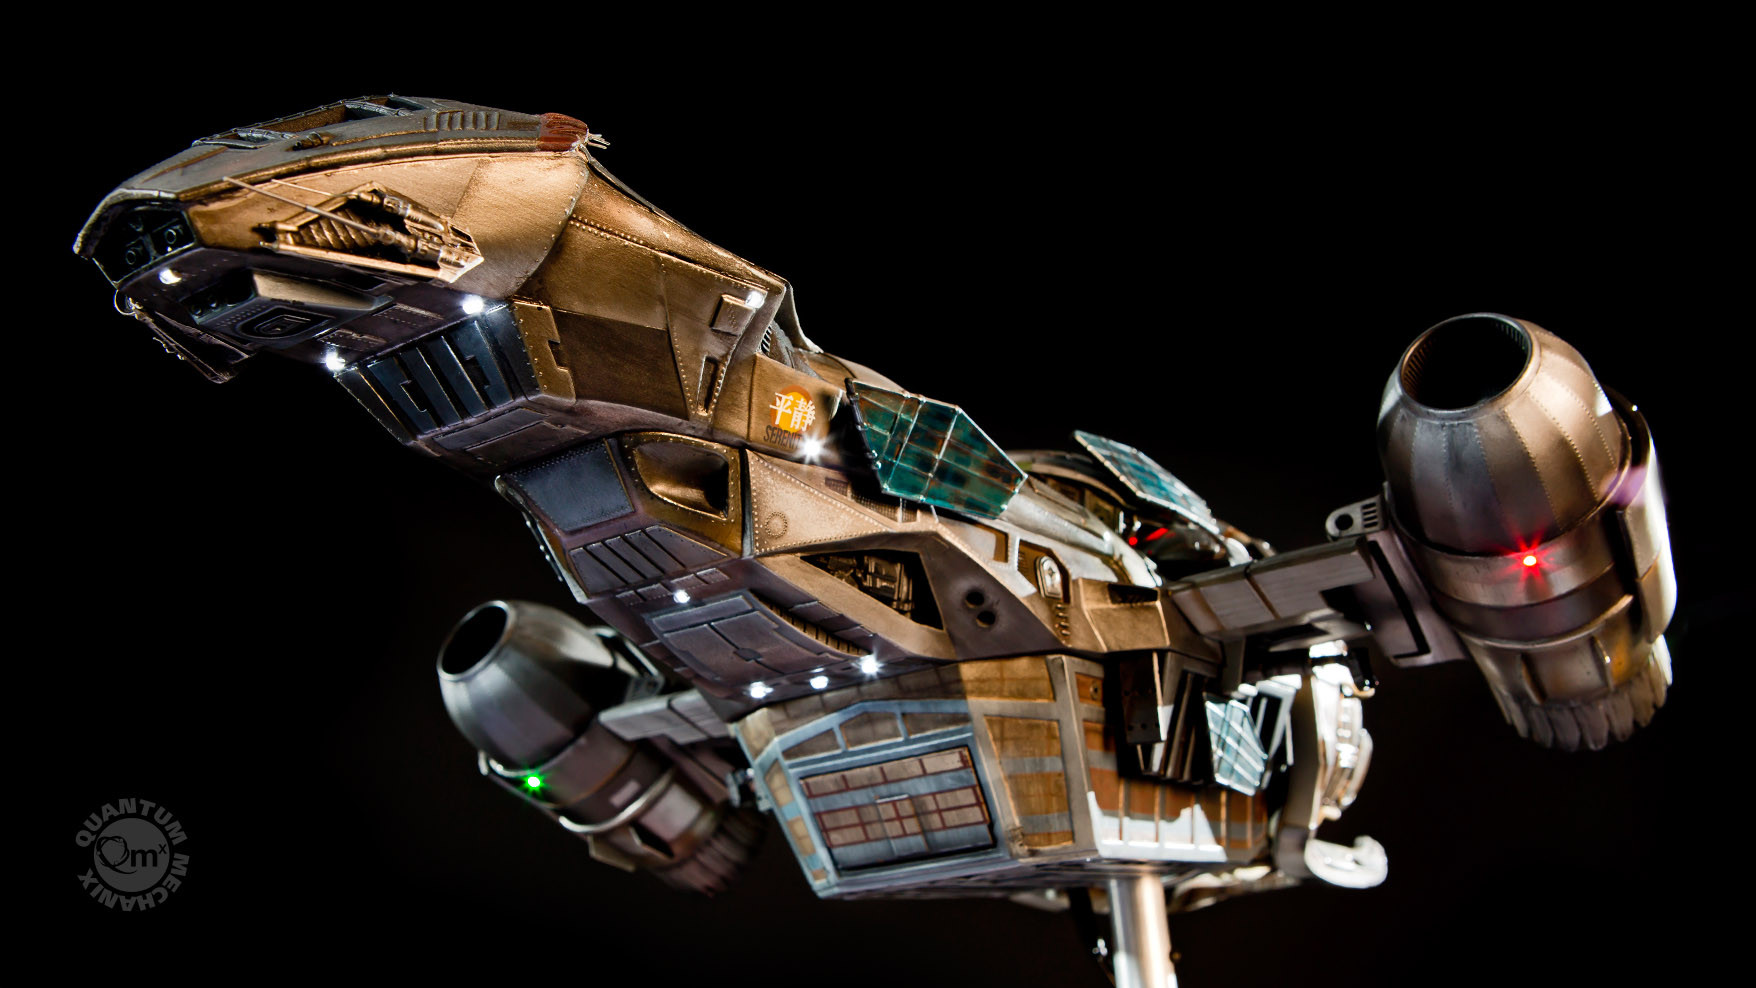 3d Laser Wallpapers Firefly Serenity Film Scale Artisan Replica